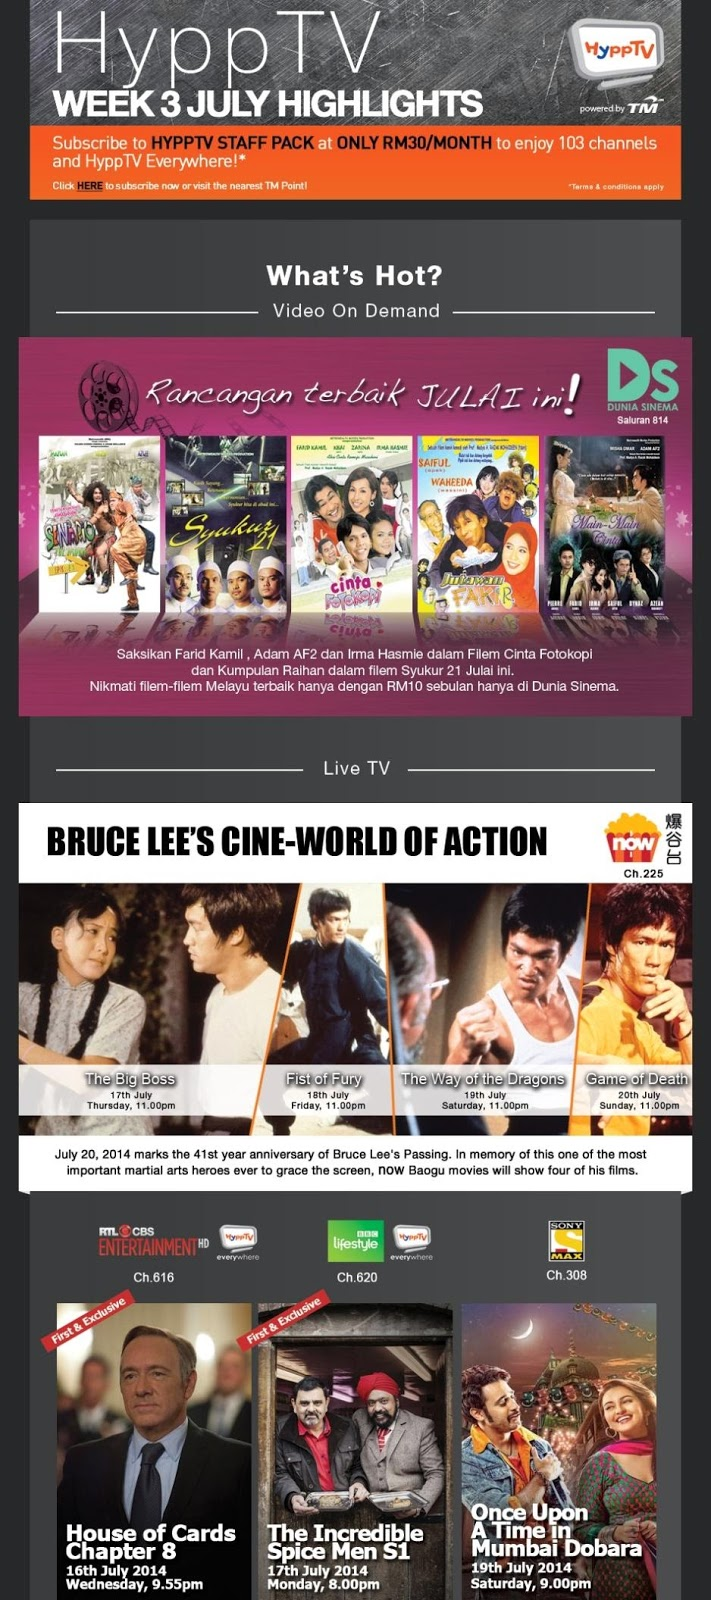 Catch Bruce Lee's Cine-World of Actions and Stand A Chance to Win Guardians of the Galaxy Premiums on HyppTV i-Contest